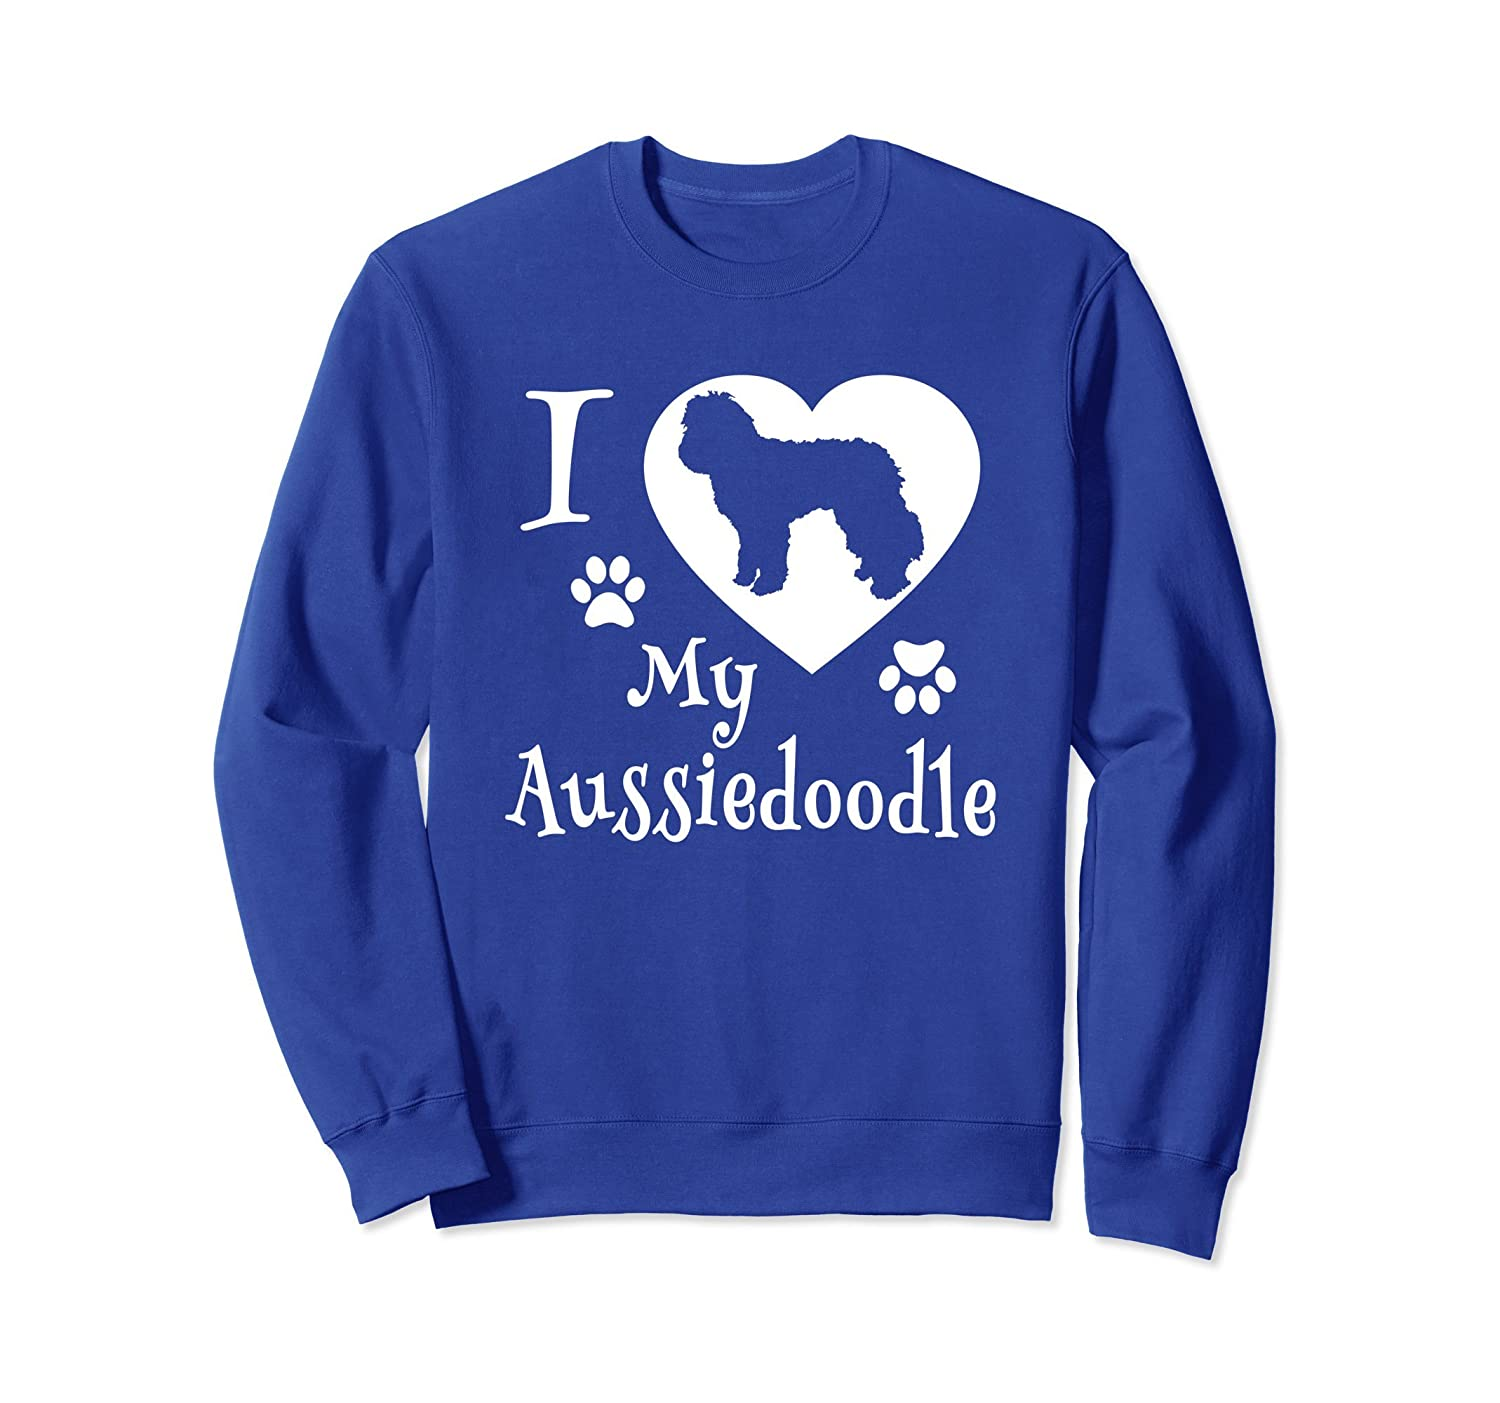 Aussiedoodle Sweatshirt I Love My Aussiedoodle Gifts-mt